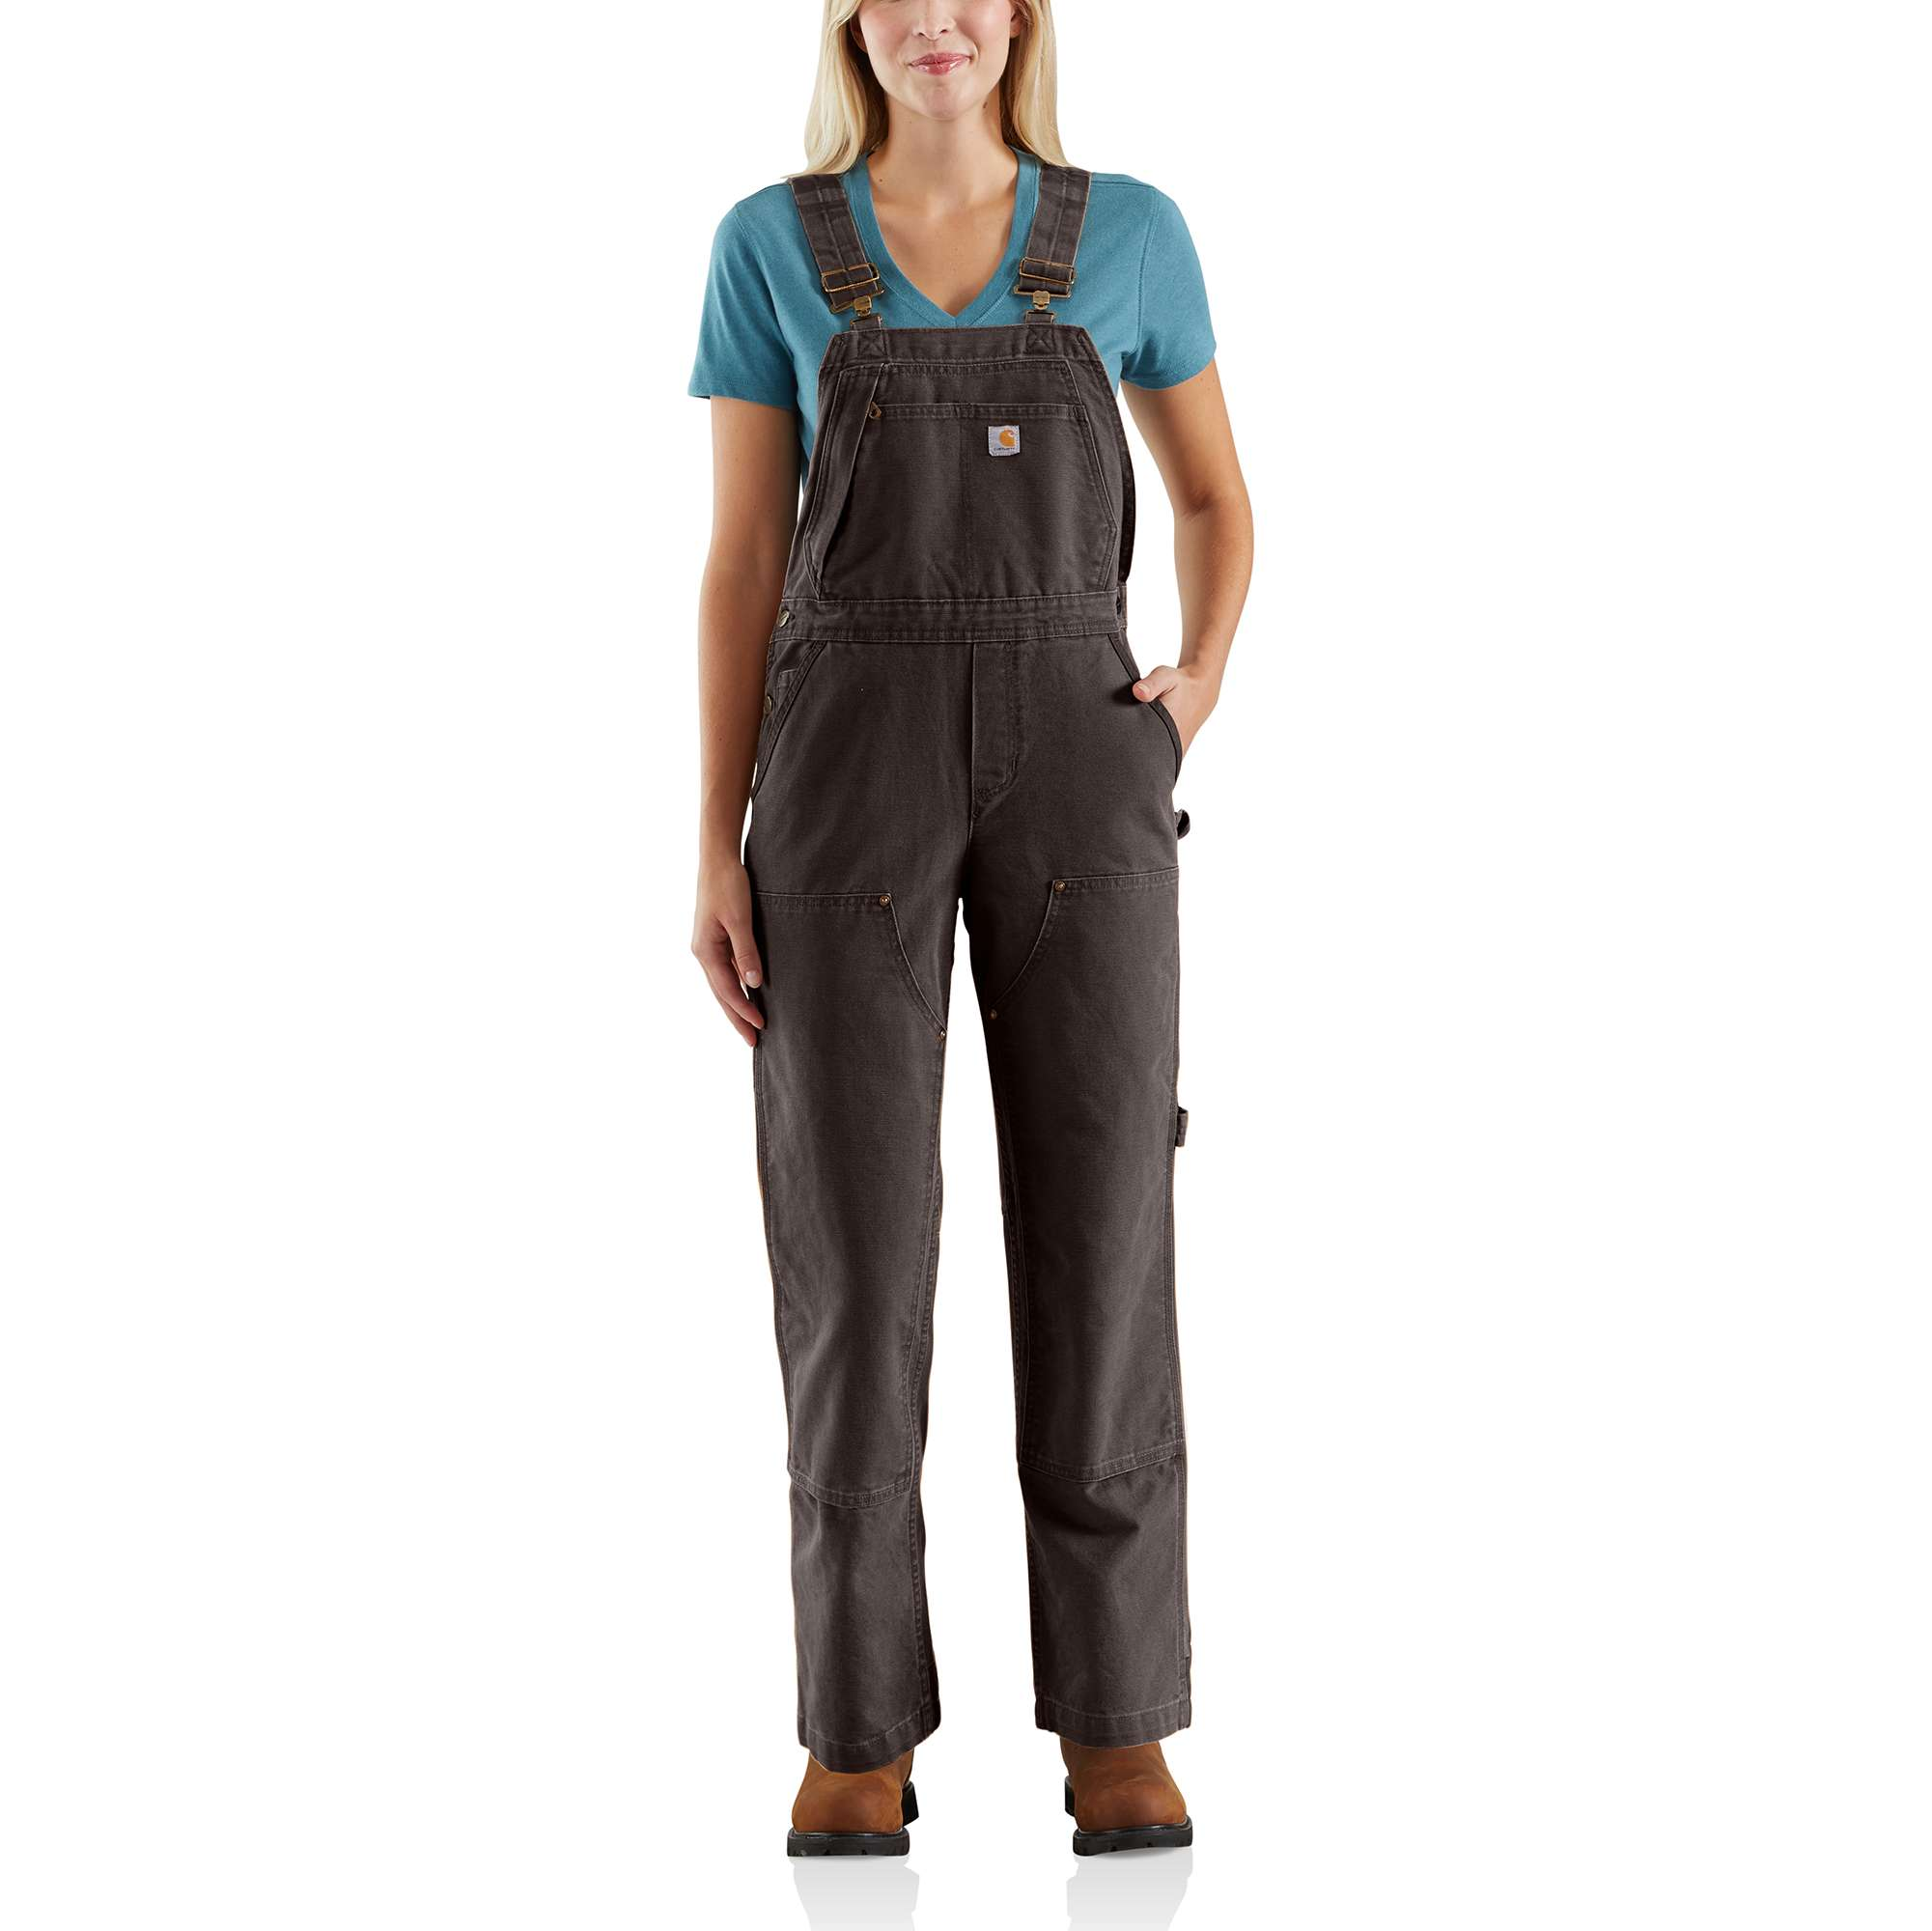 official discount coupon newest style Buy Womens Wildwood Unlined Bib Overalls - Carhartt Online ...